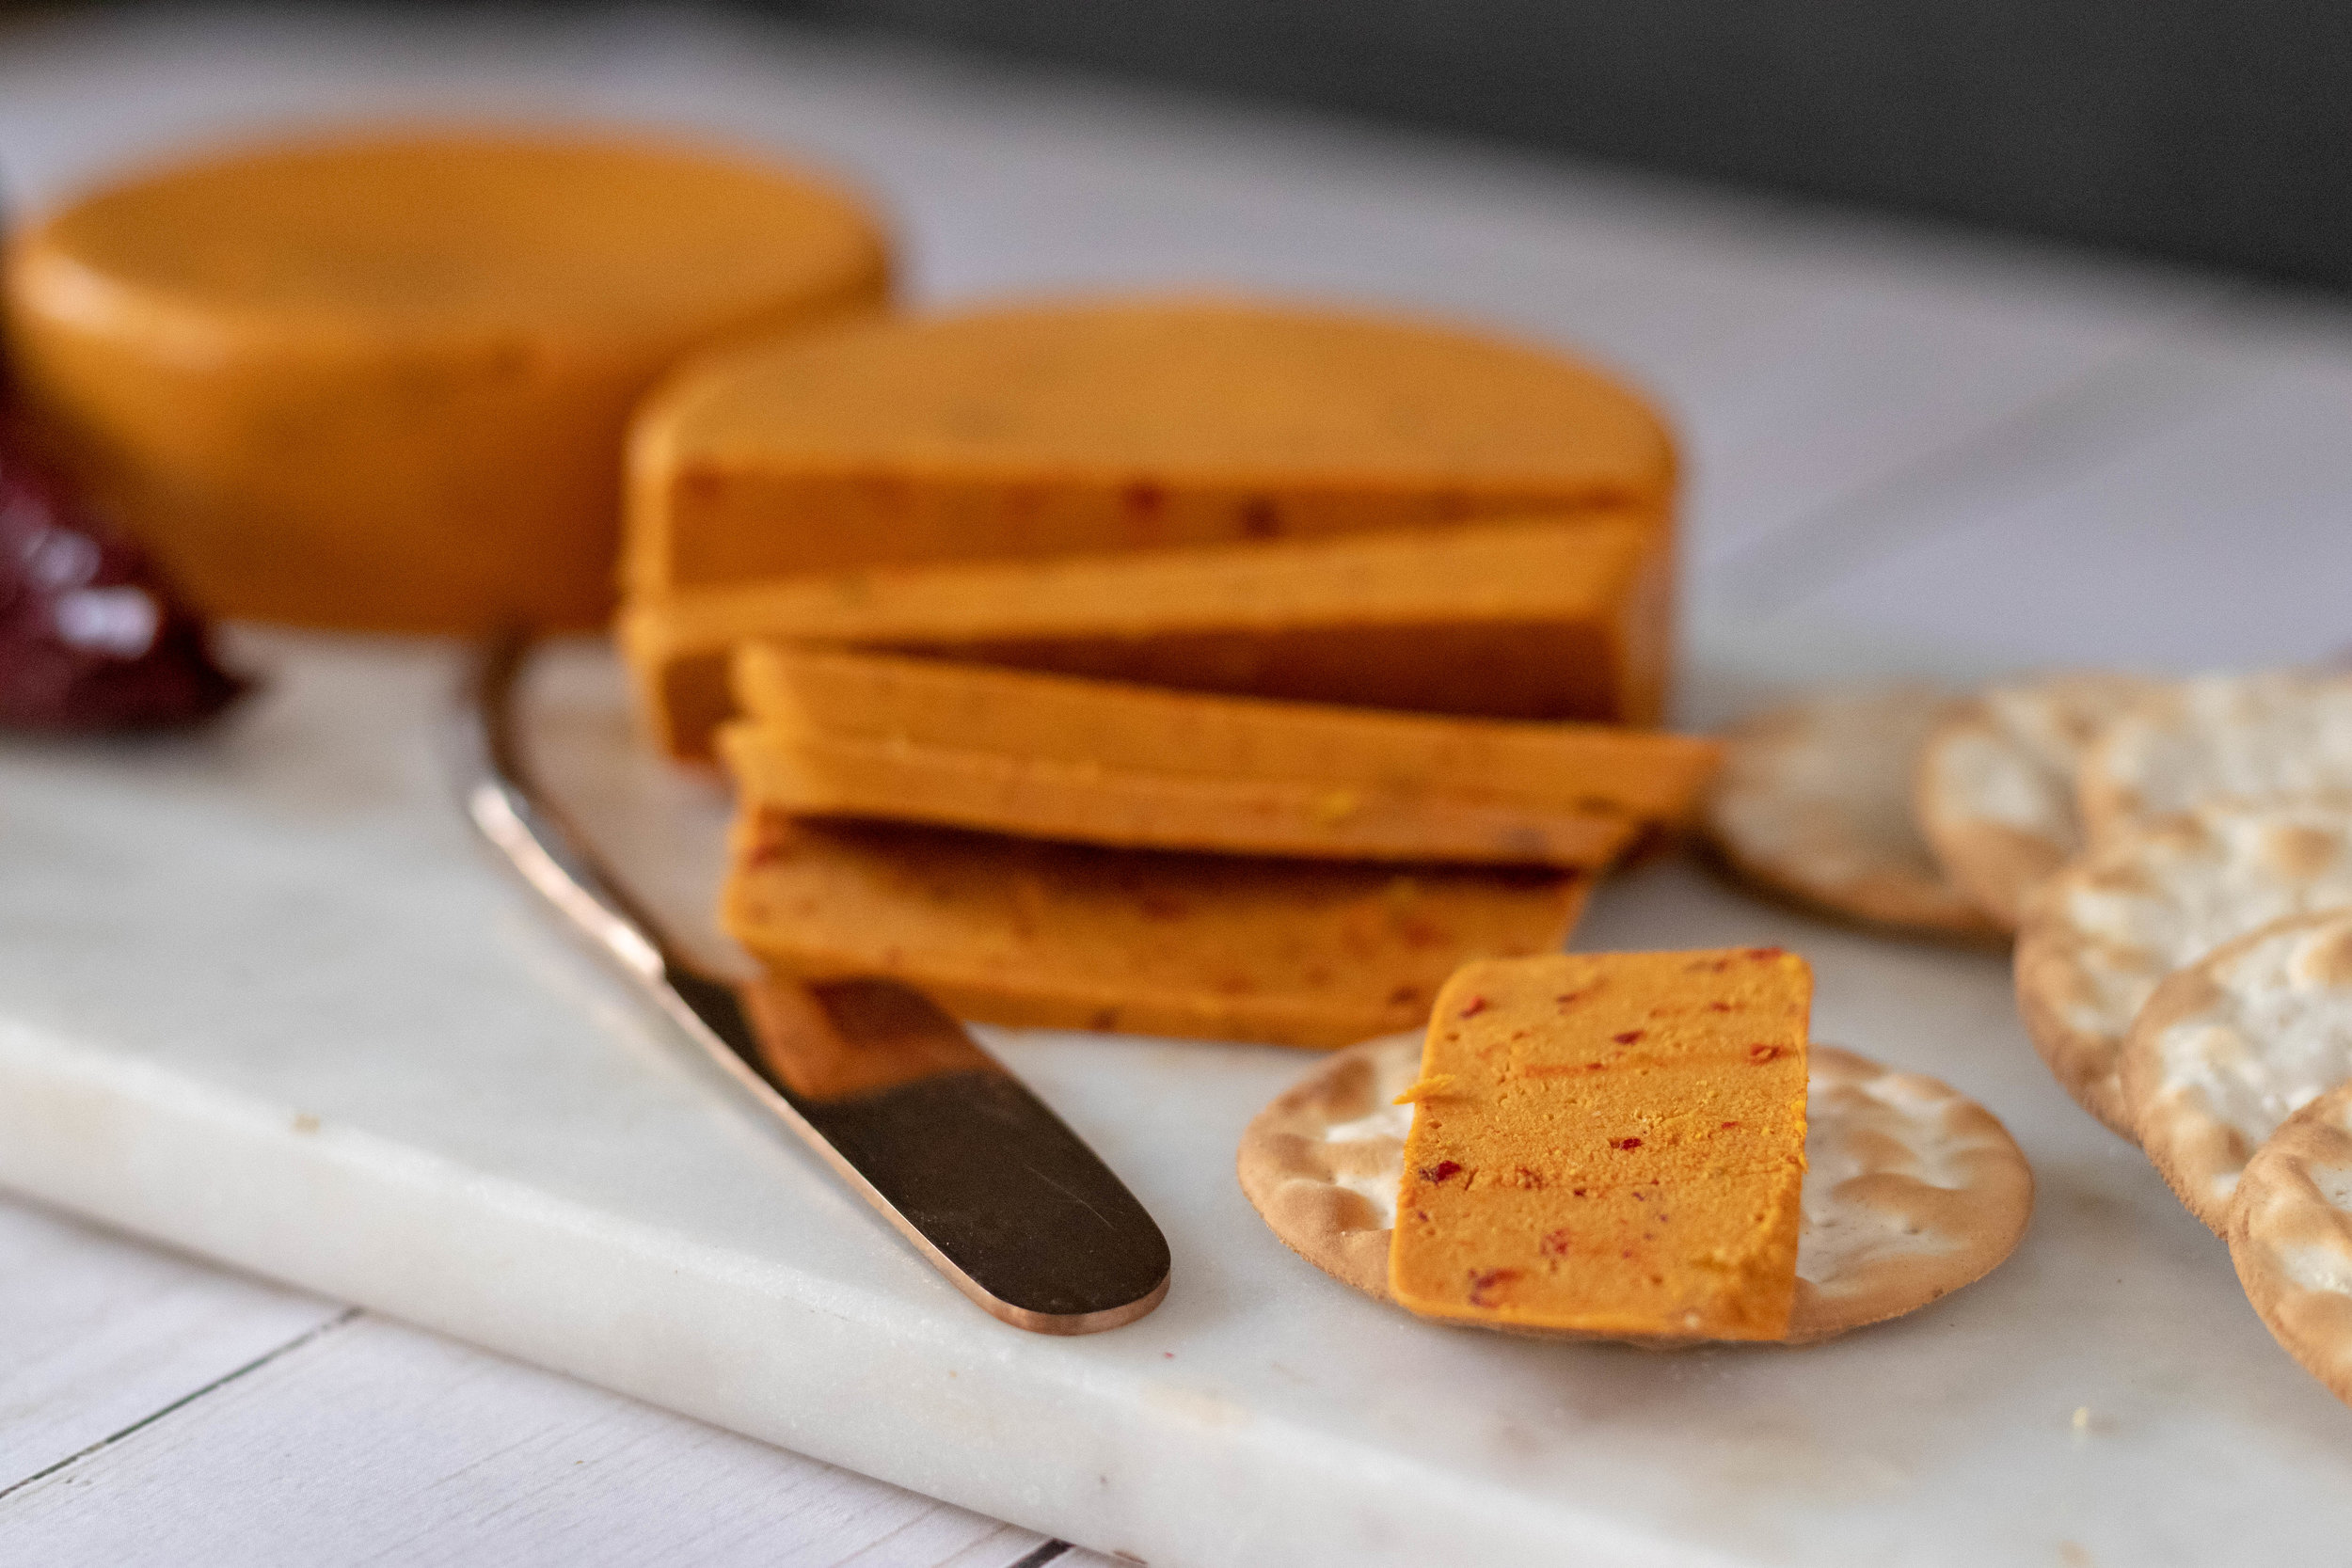 Vegan Smokey Chile Cheddar Cheese on a cracker